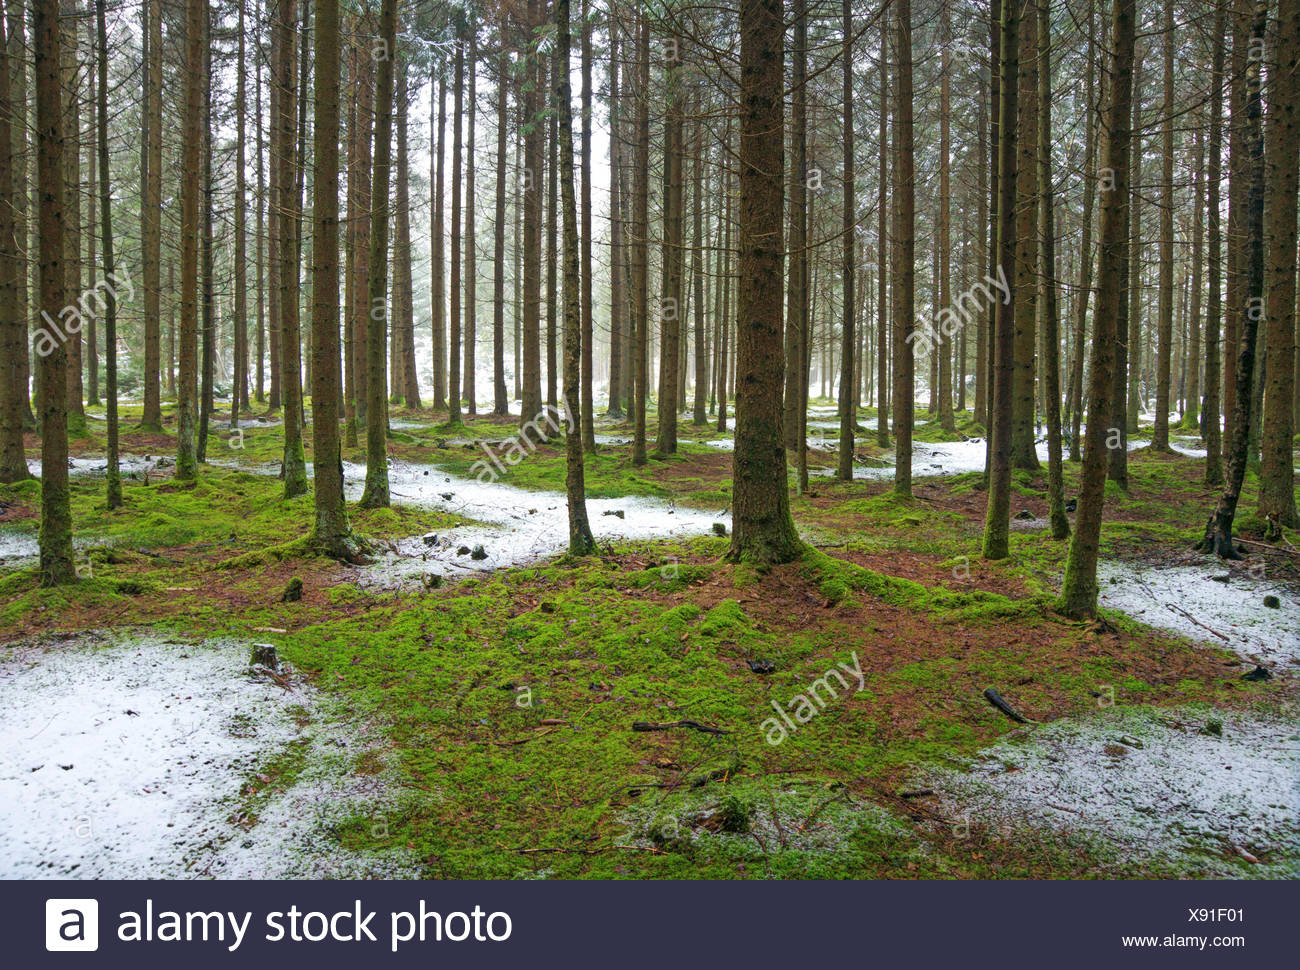 spruce (Picea spec.), view in a spruce forest with mossy forest ground and a little bit fresh snow, Germany, Bavaria, Oberbayern, Upper Bavaria Stock Photo